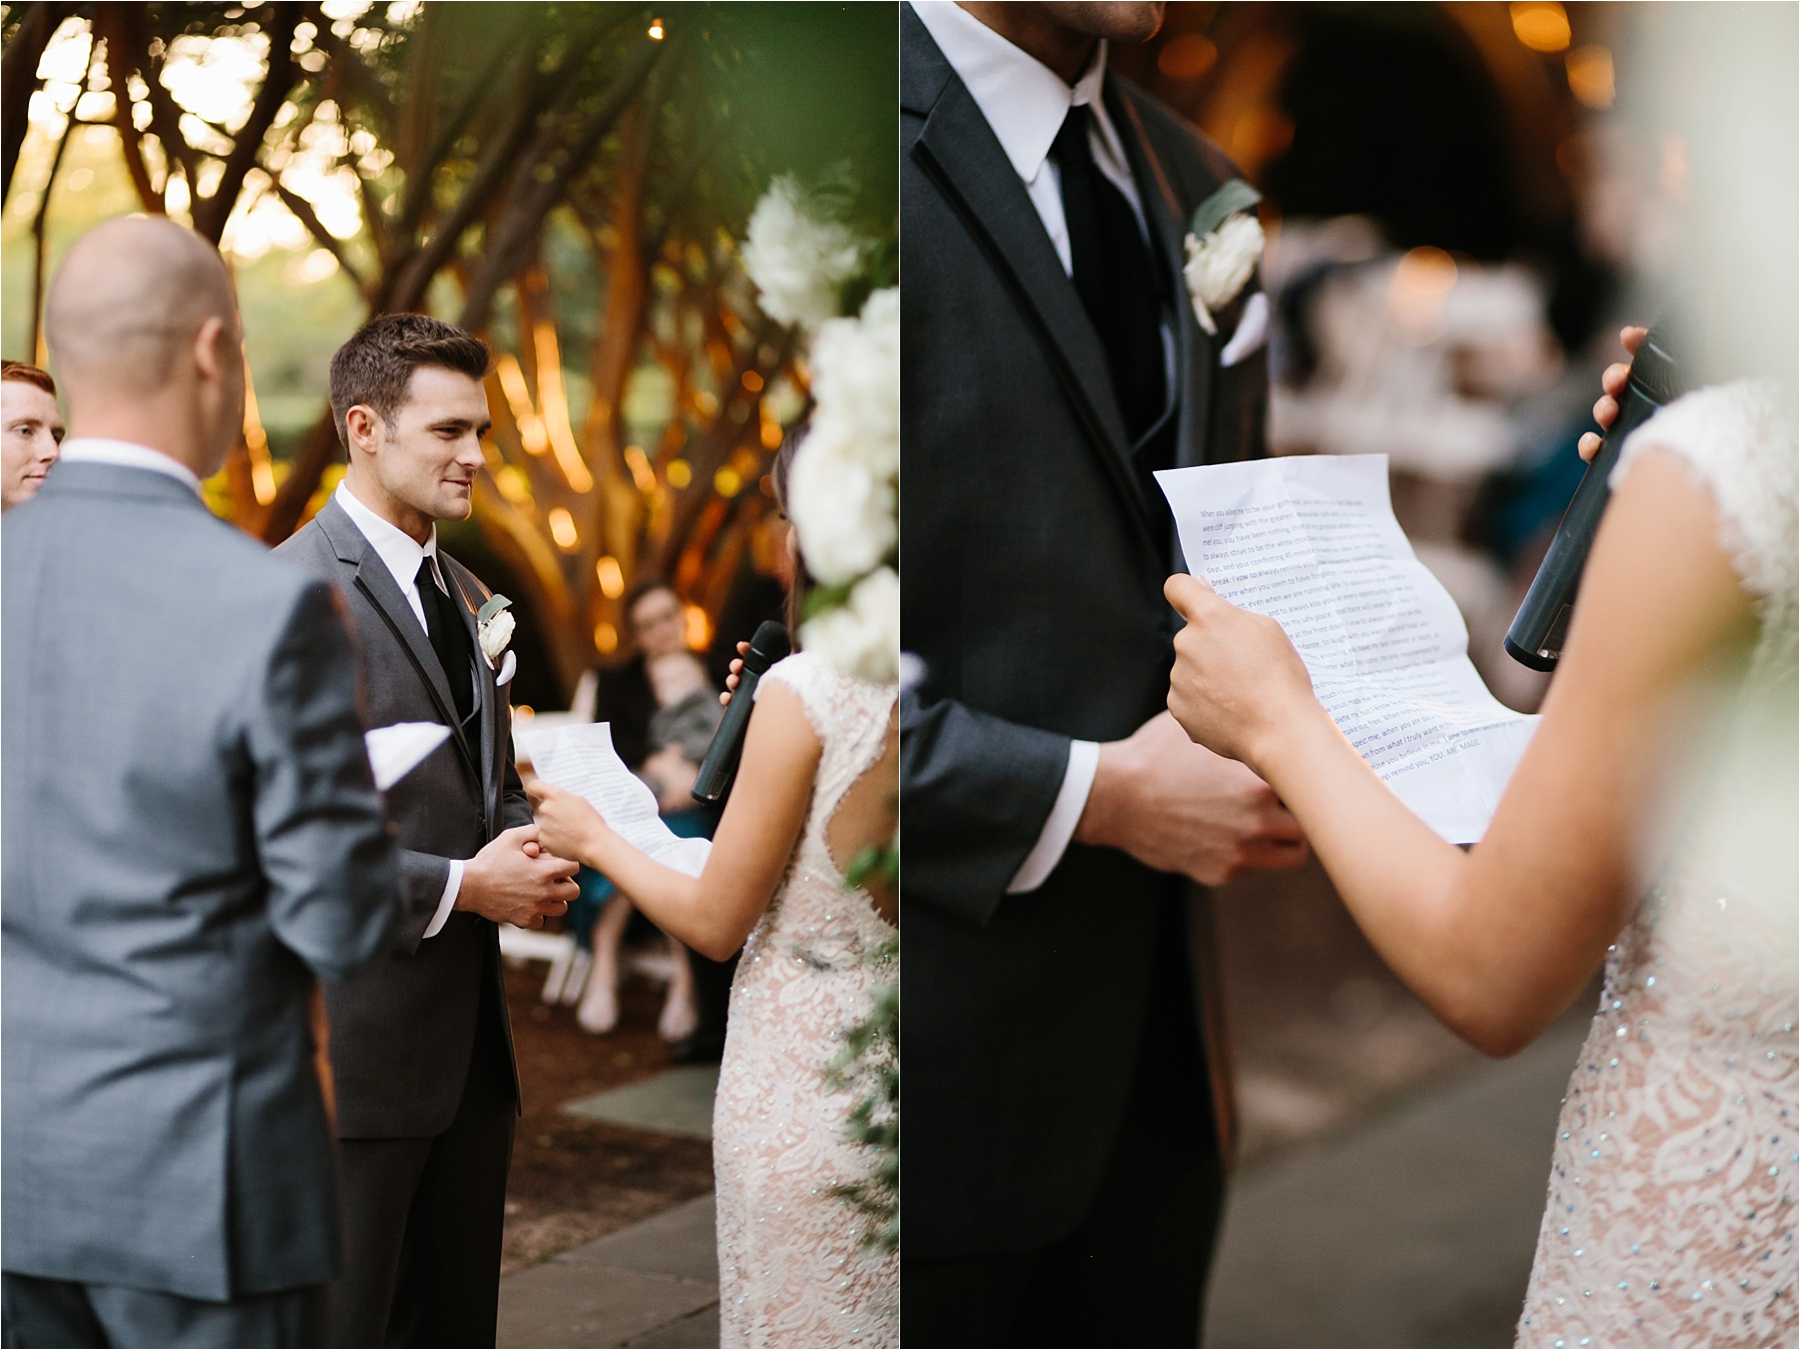 Devyn + Caden __ a Dallas Arboretum Garden Style Wedding by North Texas Wedding Photographer Rachel Meagan Photography __ 097